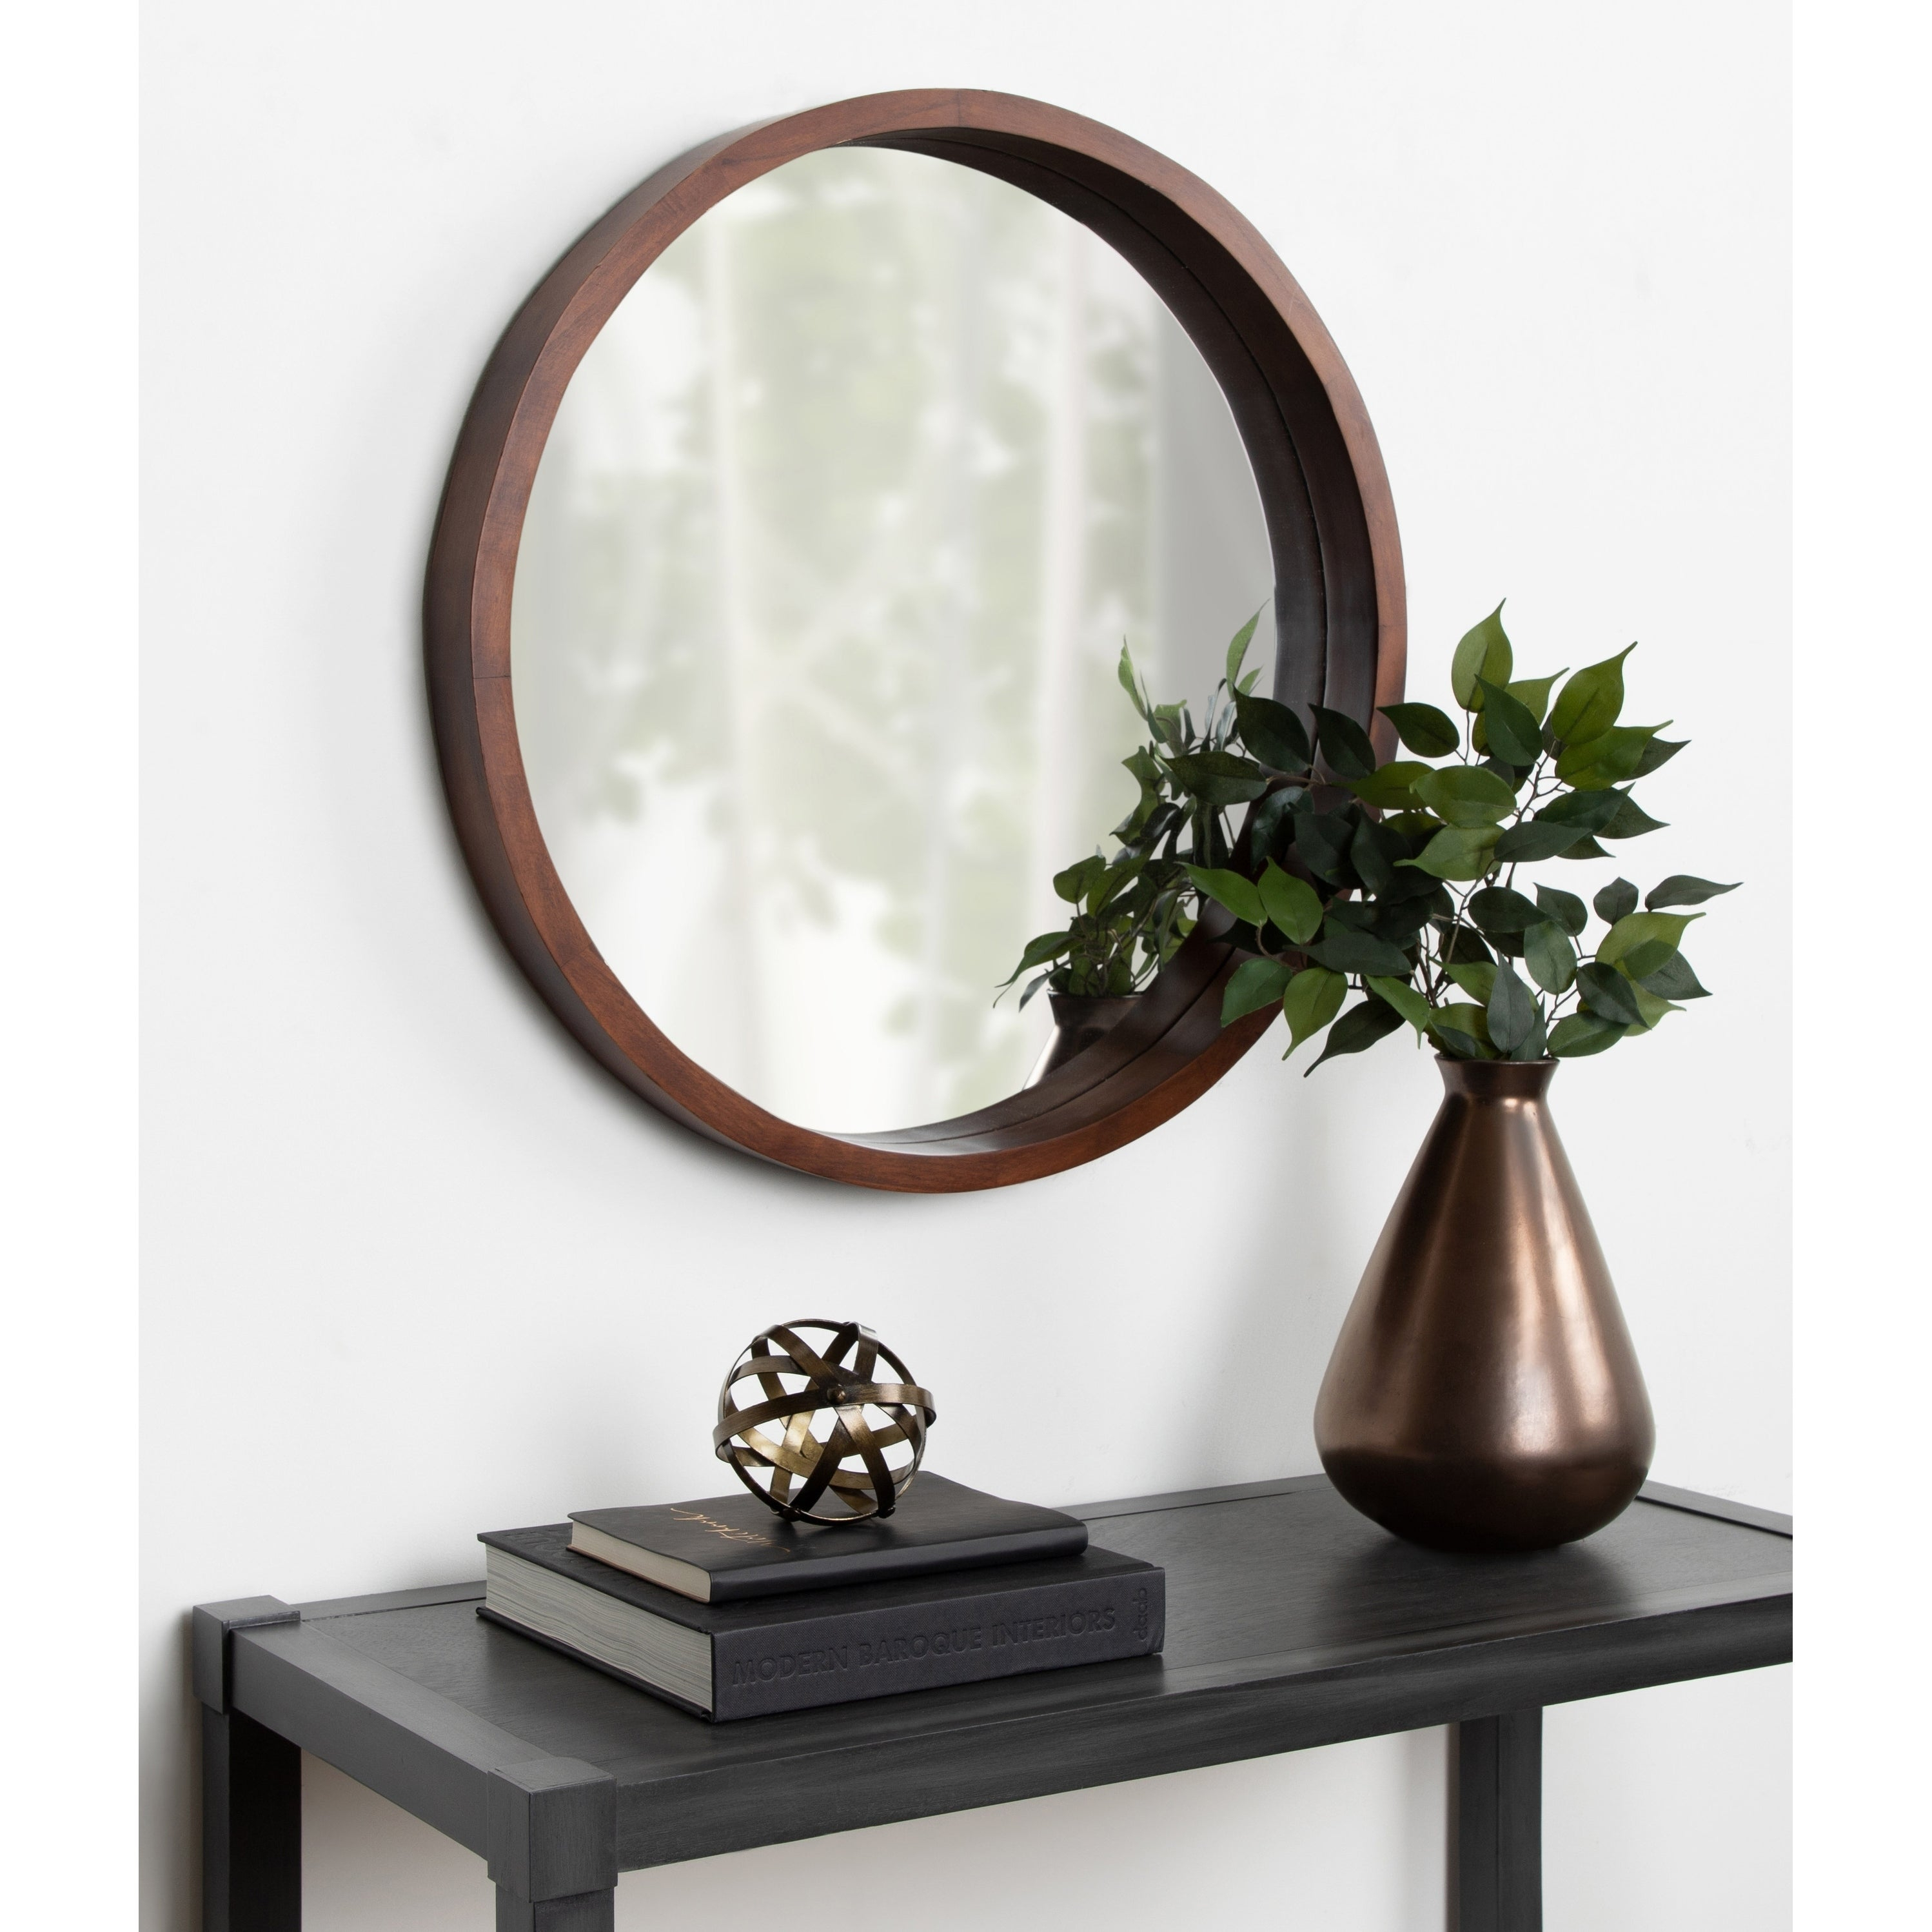 Accent Mirrors | Shop Online At Overstock For Shildon Beveled Accent Mirrors (View 13 of 20)